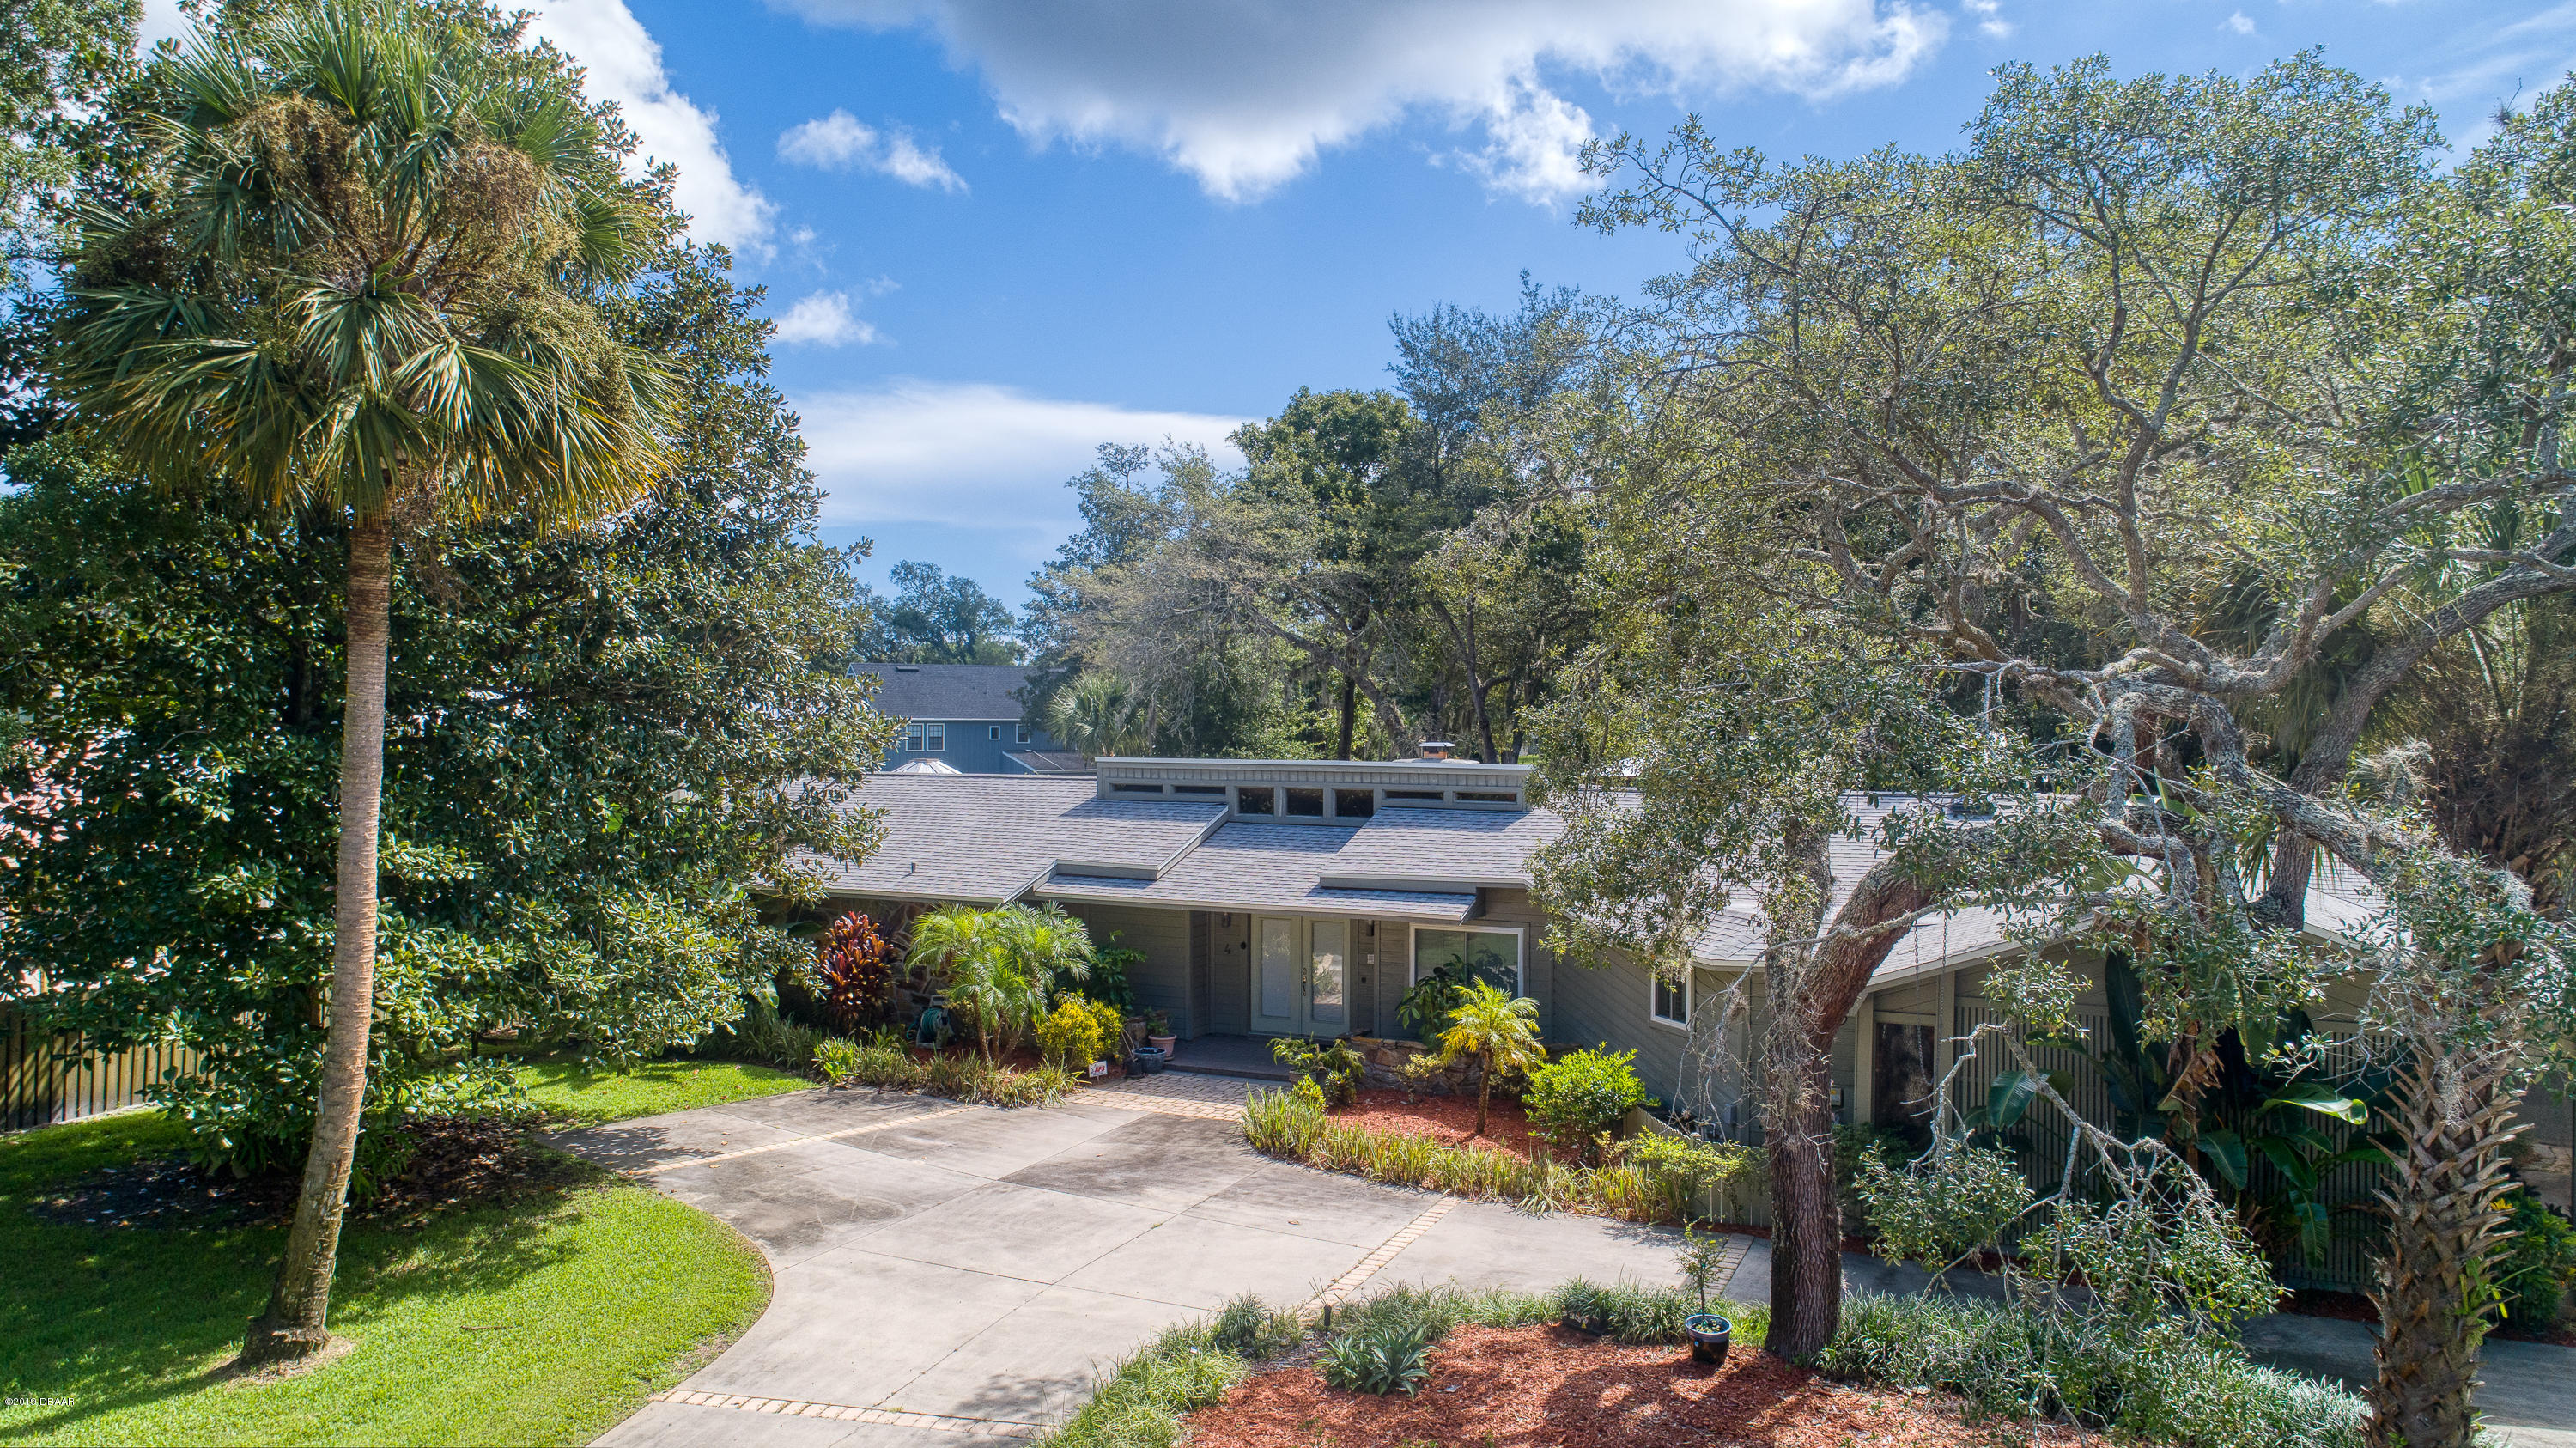 Photo of 4 Willow Oaks Trail, Ormond Beach, FL 32174